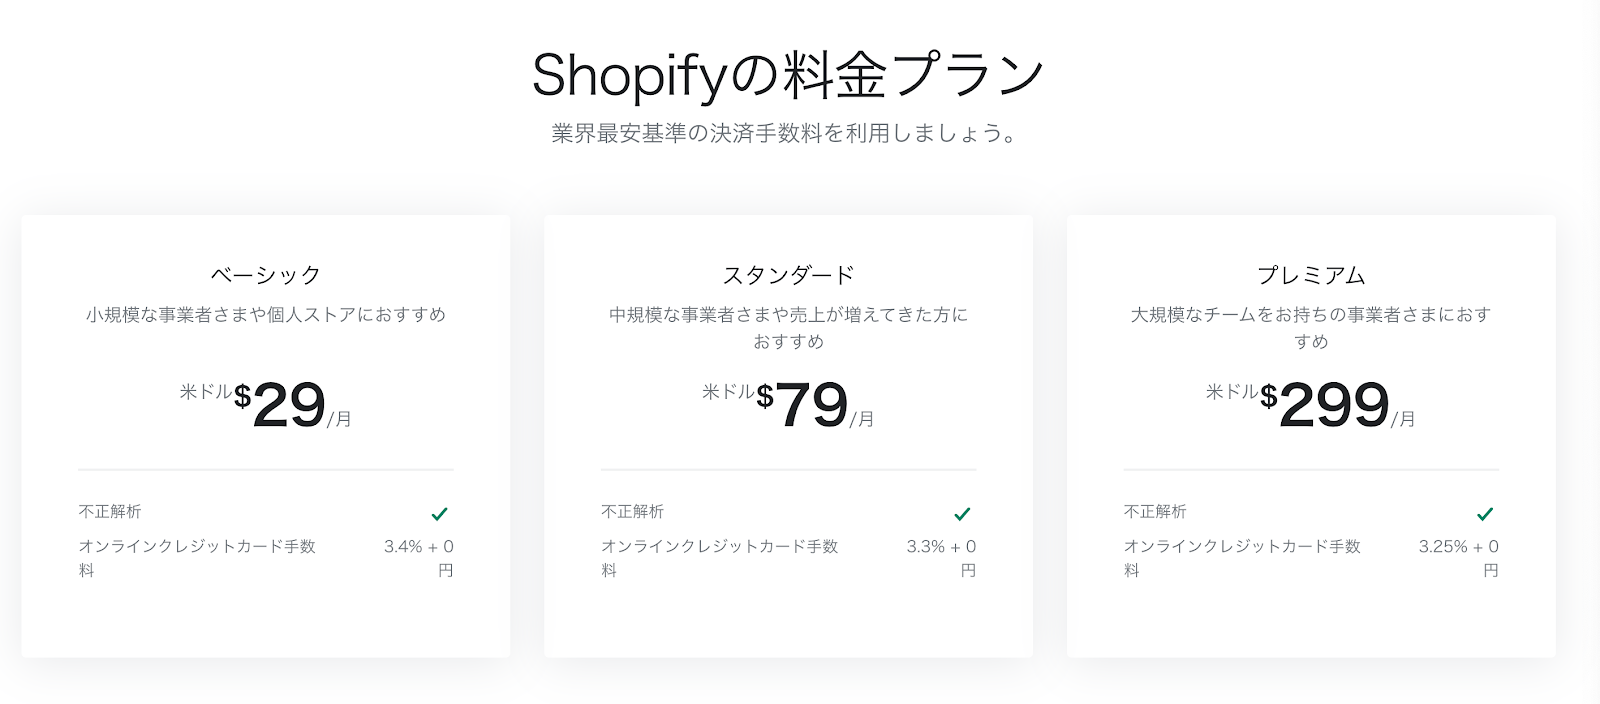 Shopifyの料金プラン